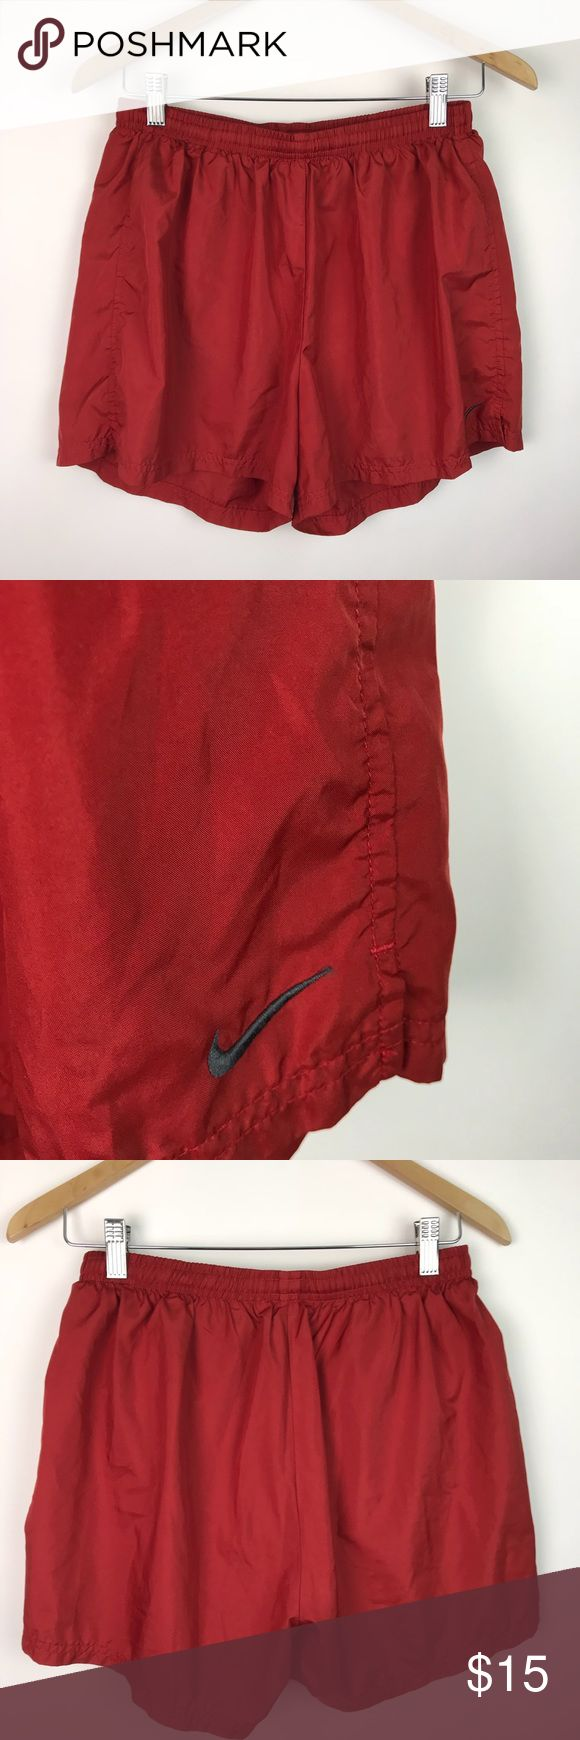 NIKE Women's Classic Basic Athletic Shorts AO73 Nike Womens Classic Running Shorts Basic Integrated Panty Red Drawstring L AO72 VGUC...NO stains holes rips or pilling  These running shorts by Nike feature a deep red 100% polyester textile, in basic classic style. They boast an elastic waistband with interior drawstring, integrated panty,interior pocket, longer profile, embroidered logo left hem. Perfect for the woman who wants a less revealing fitness shirt than those sold currently, with no…